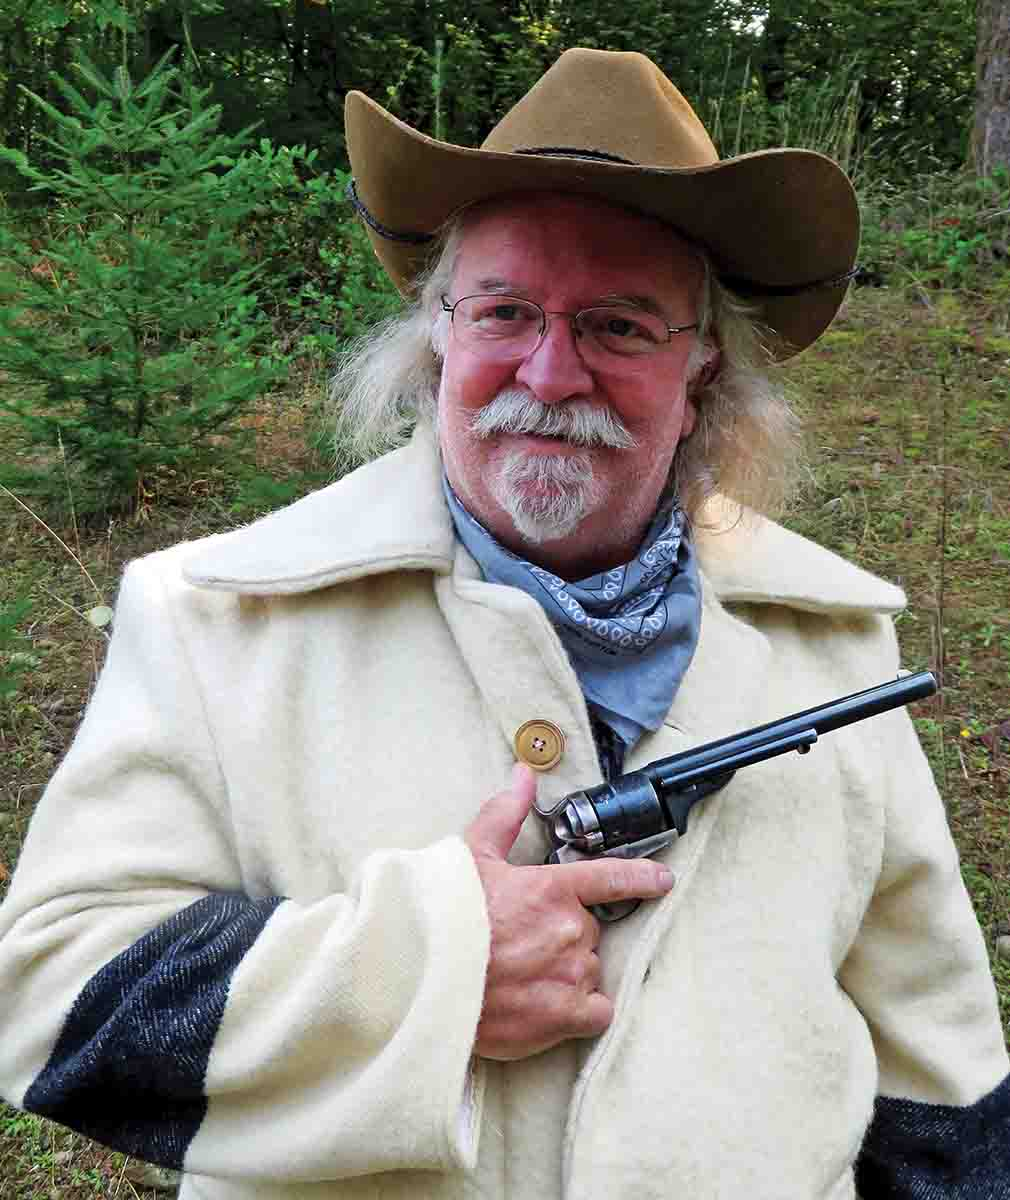 Jerry Mayo with his 8-inch barreled Richards-Mason replica in .44 Colt.